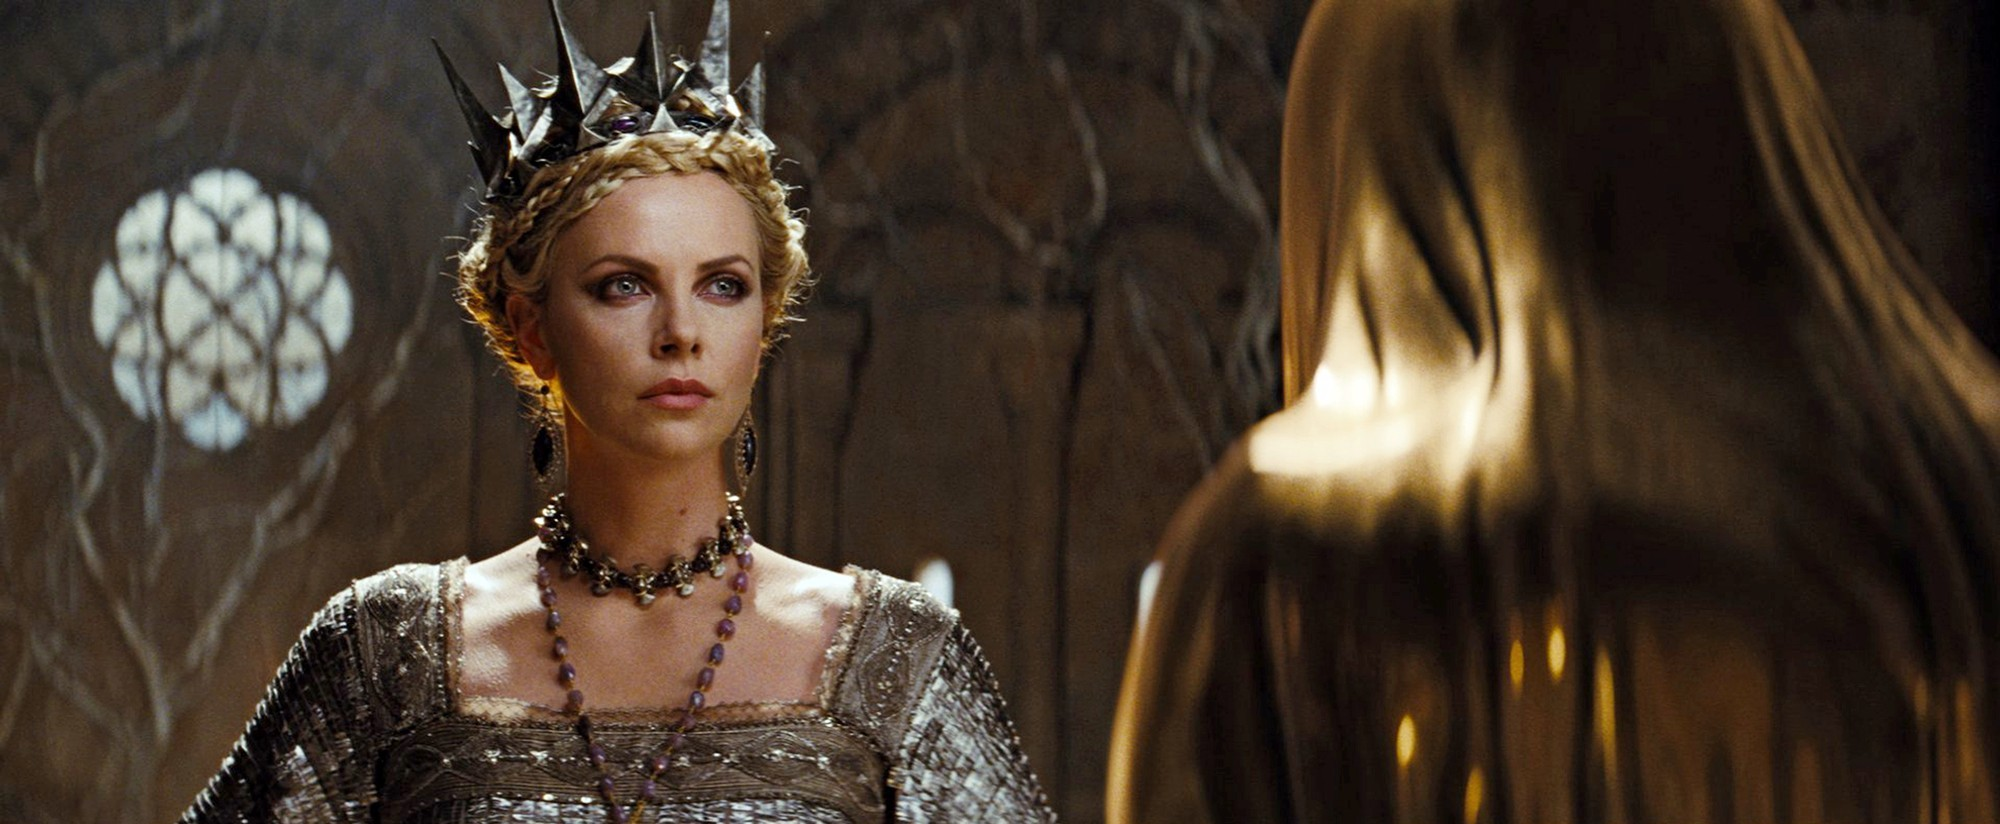 Snow white and the huntsman picture 45 for Blanche neige miroir miroir film